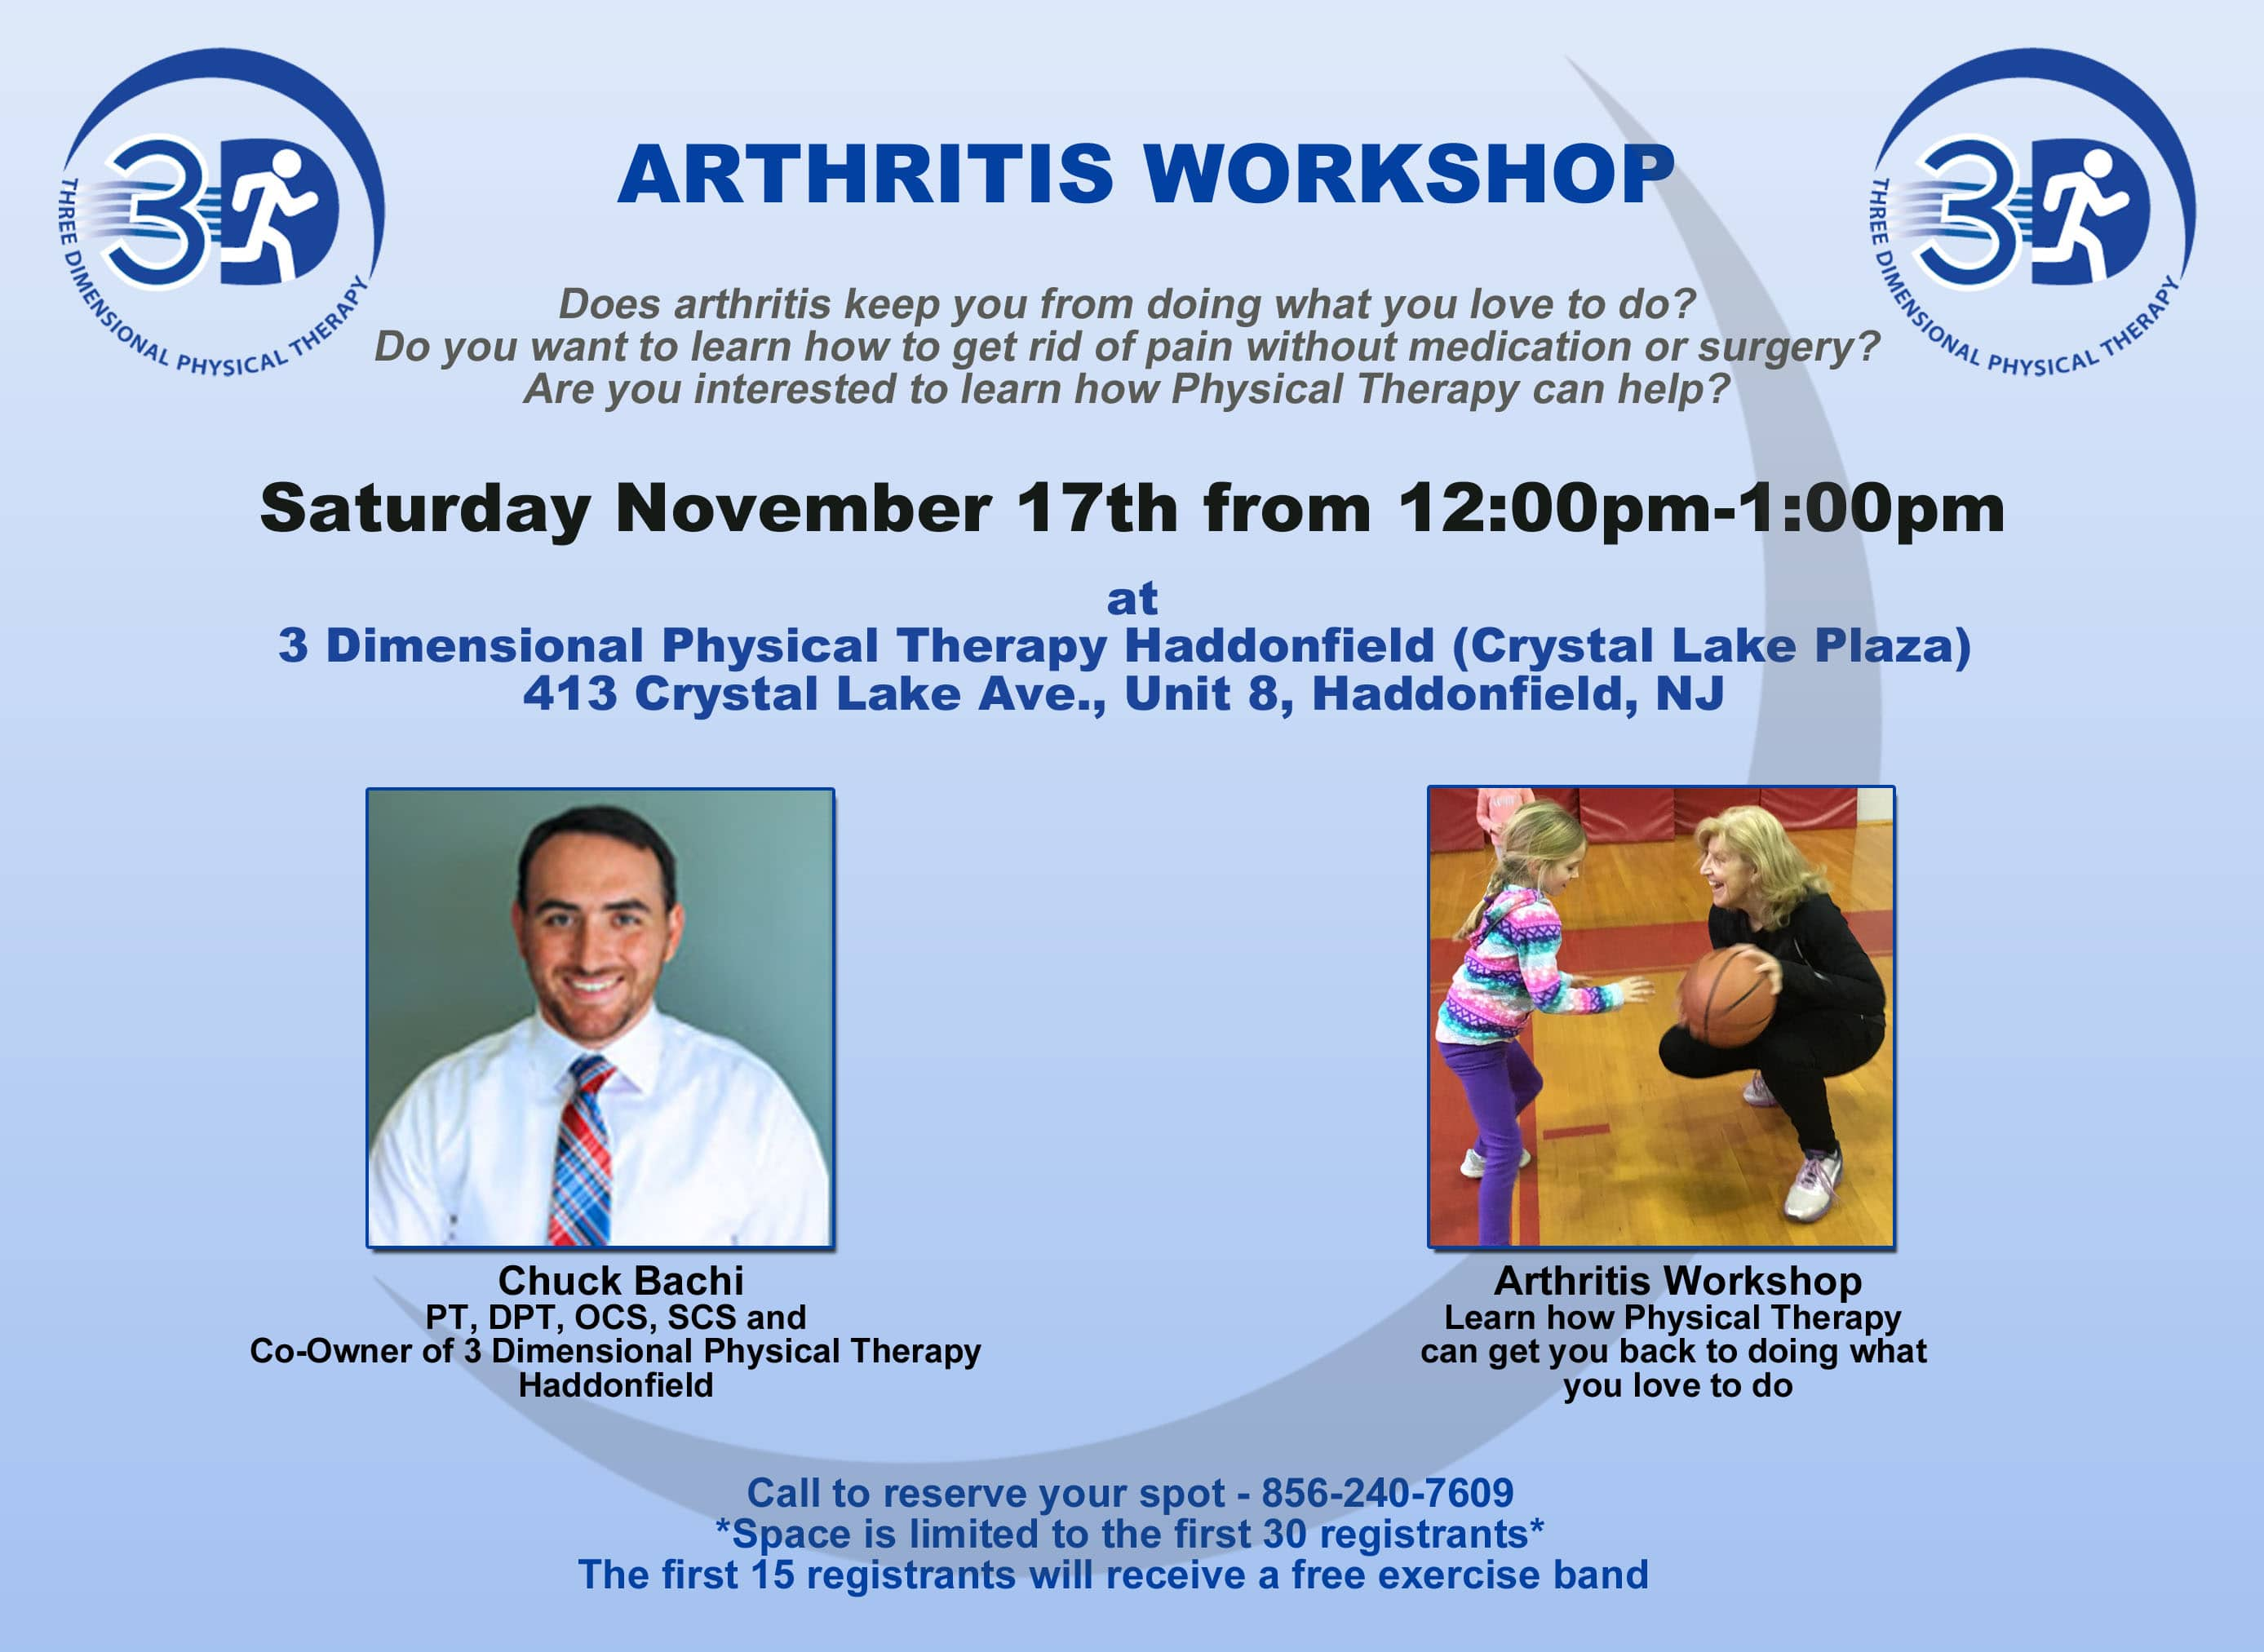 Arthritis Workshop